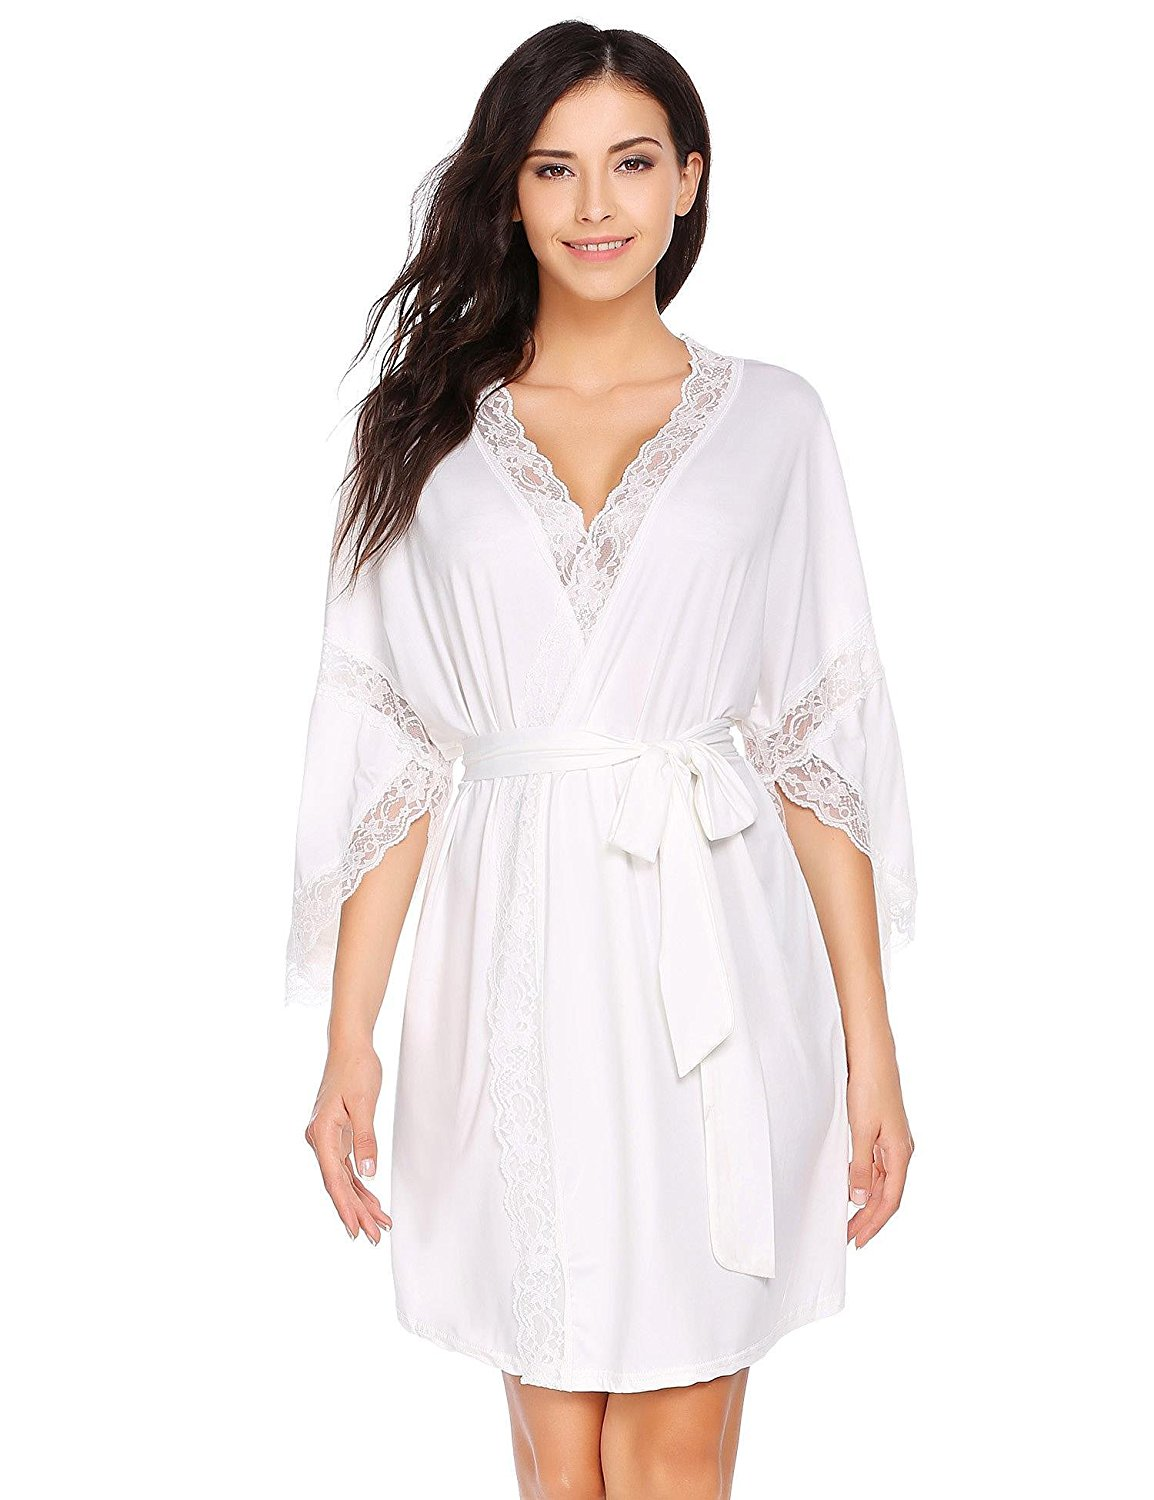 d59b3aa8c2 Get Quotations · Goldenfox Robe Women s Modal Cotton Knit Robe Lace Trim  Nightwear Sleepwear ...